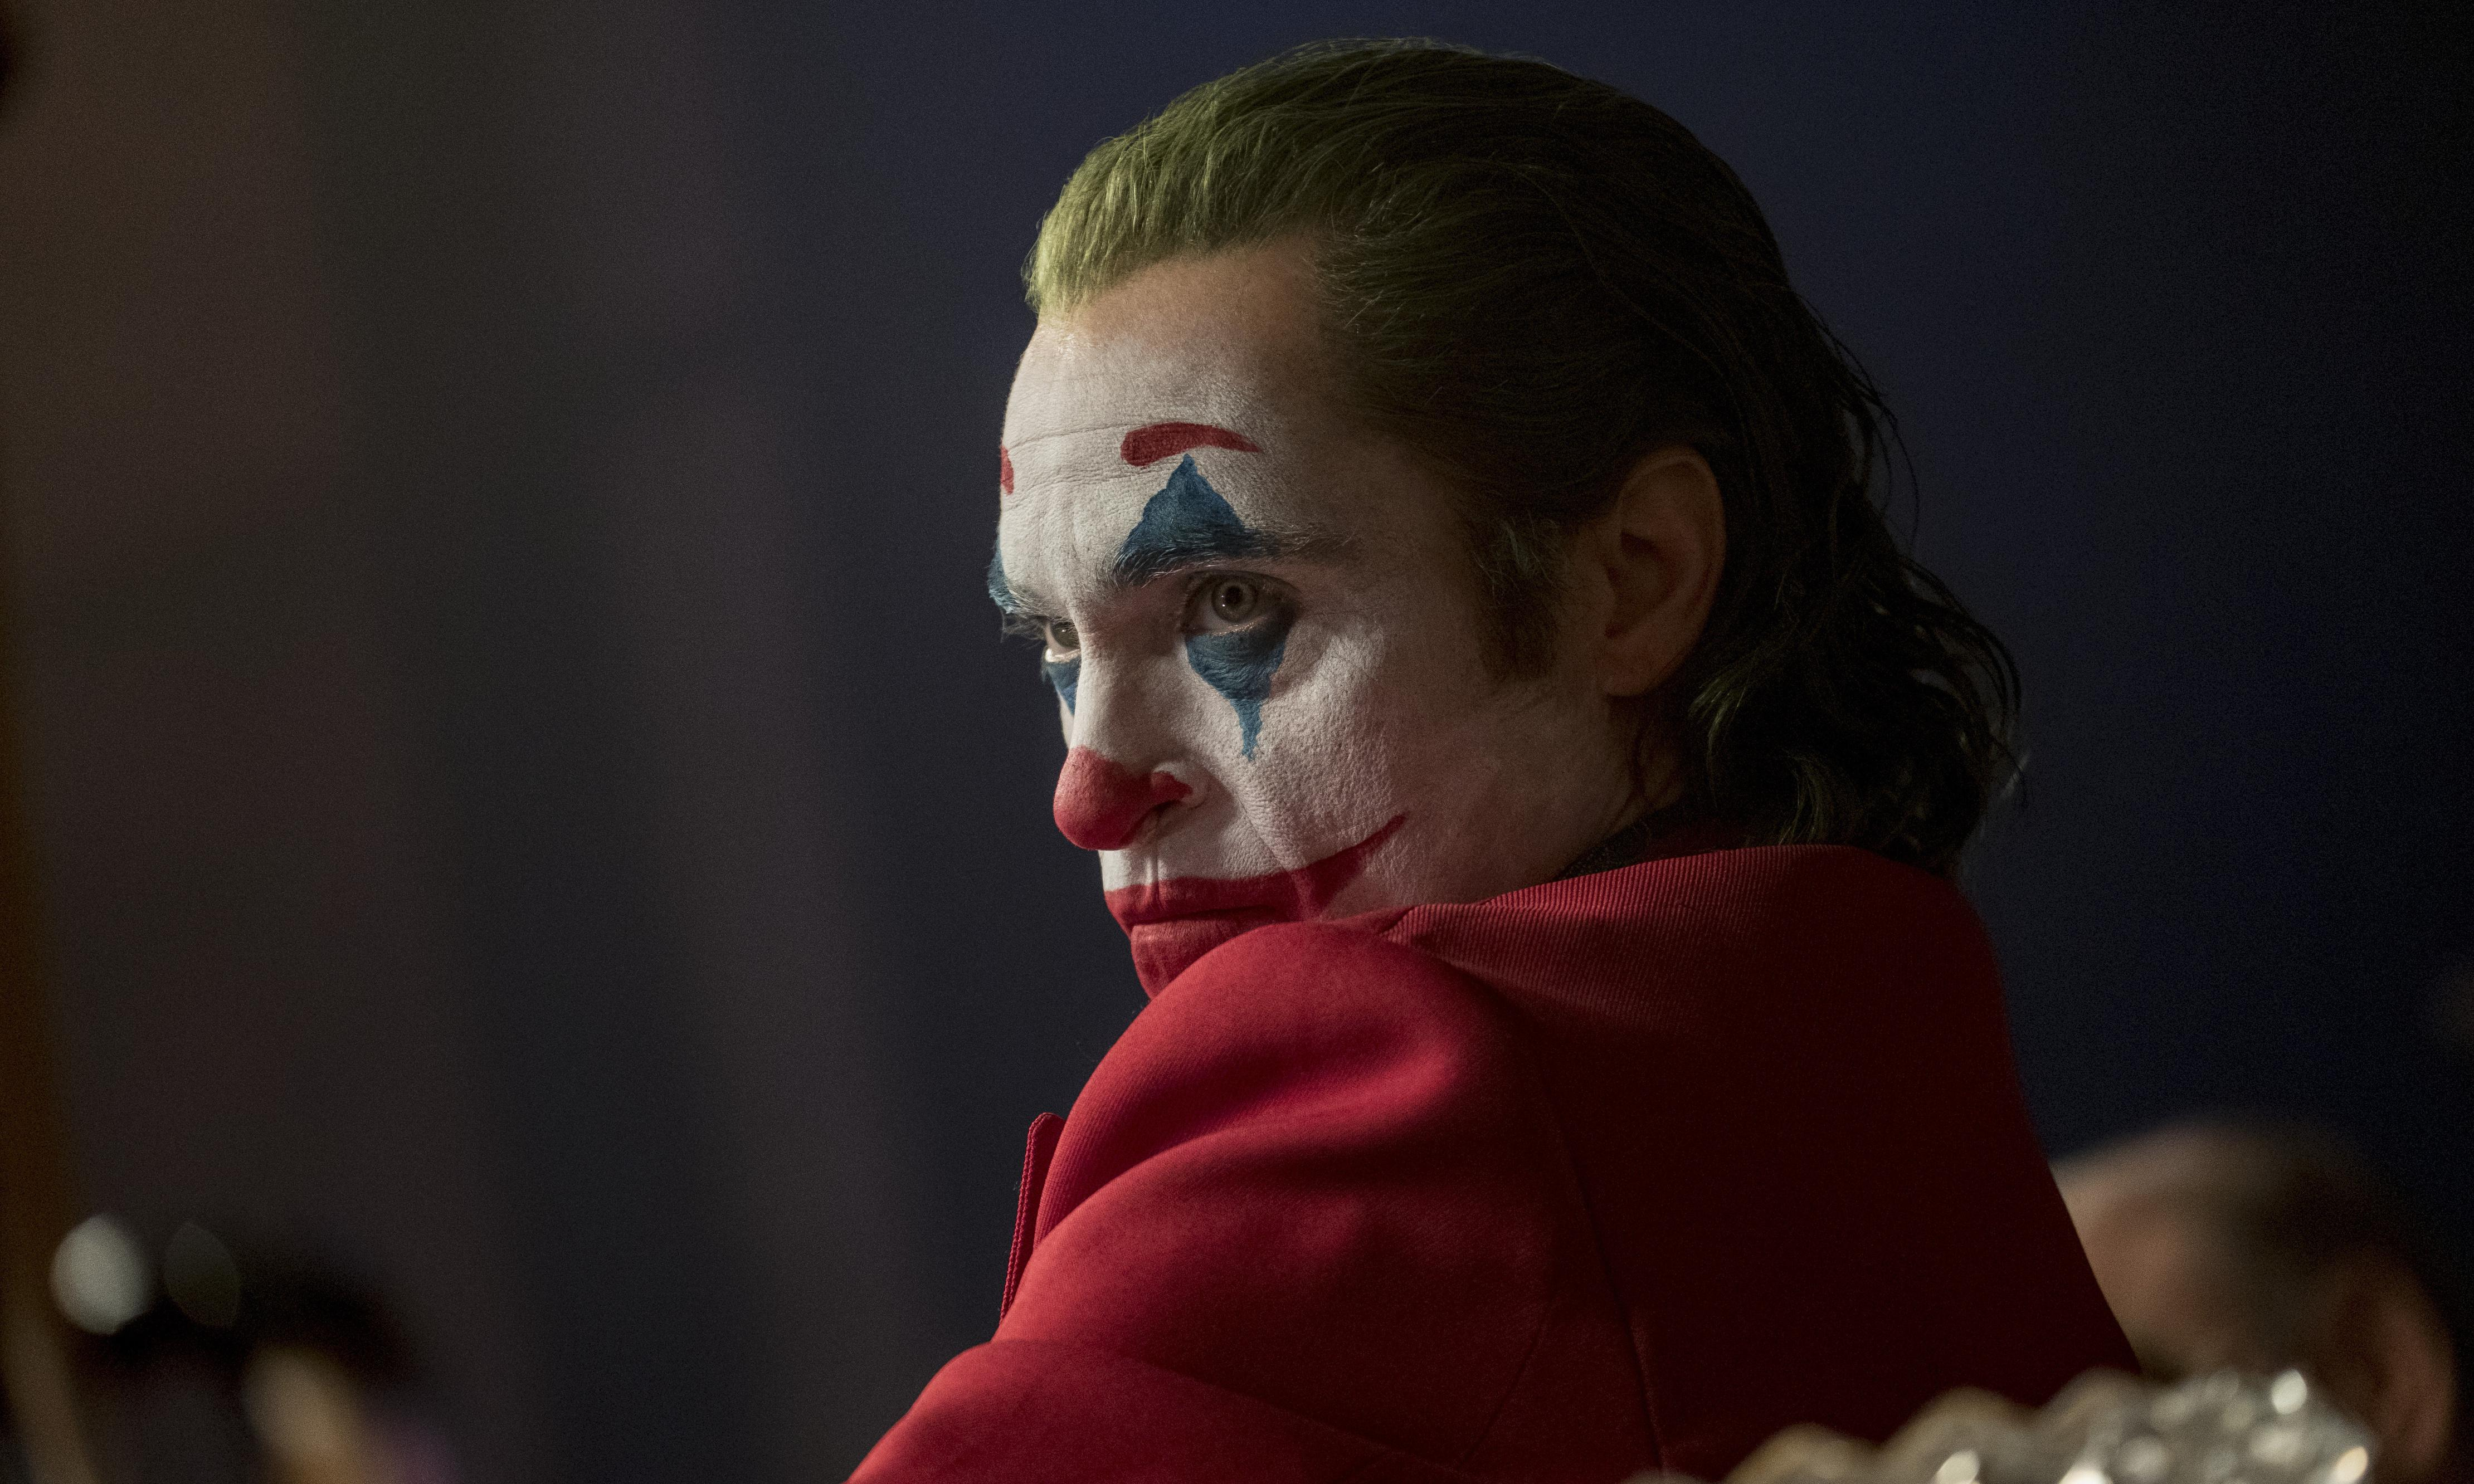 Joker isn't an ode to the far right – it's a warning against austerity